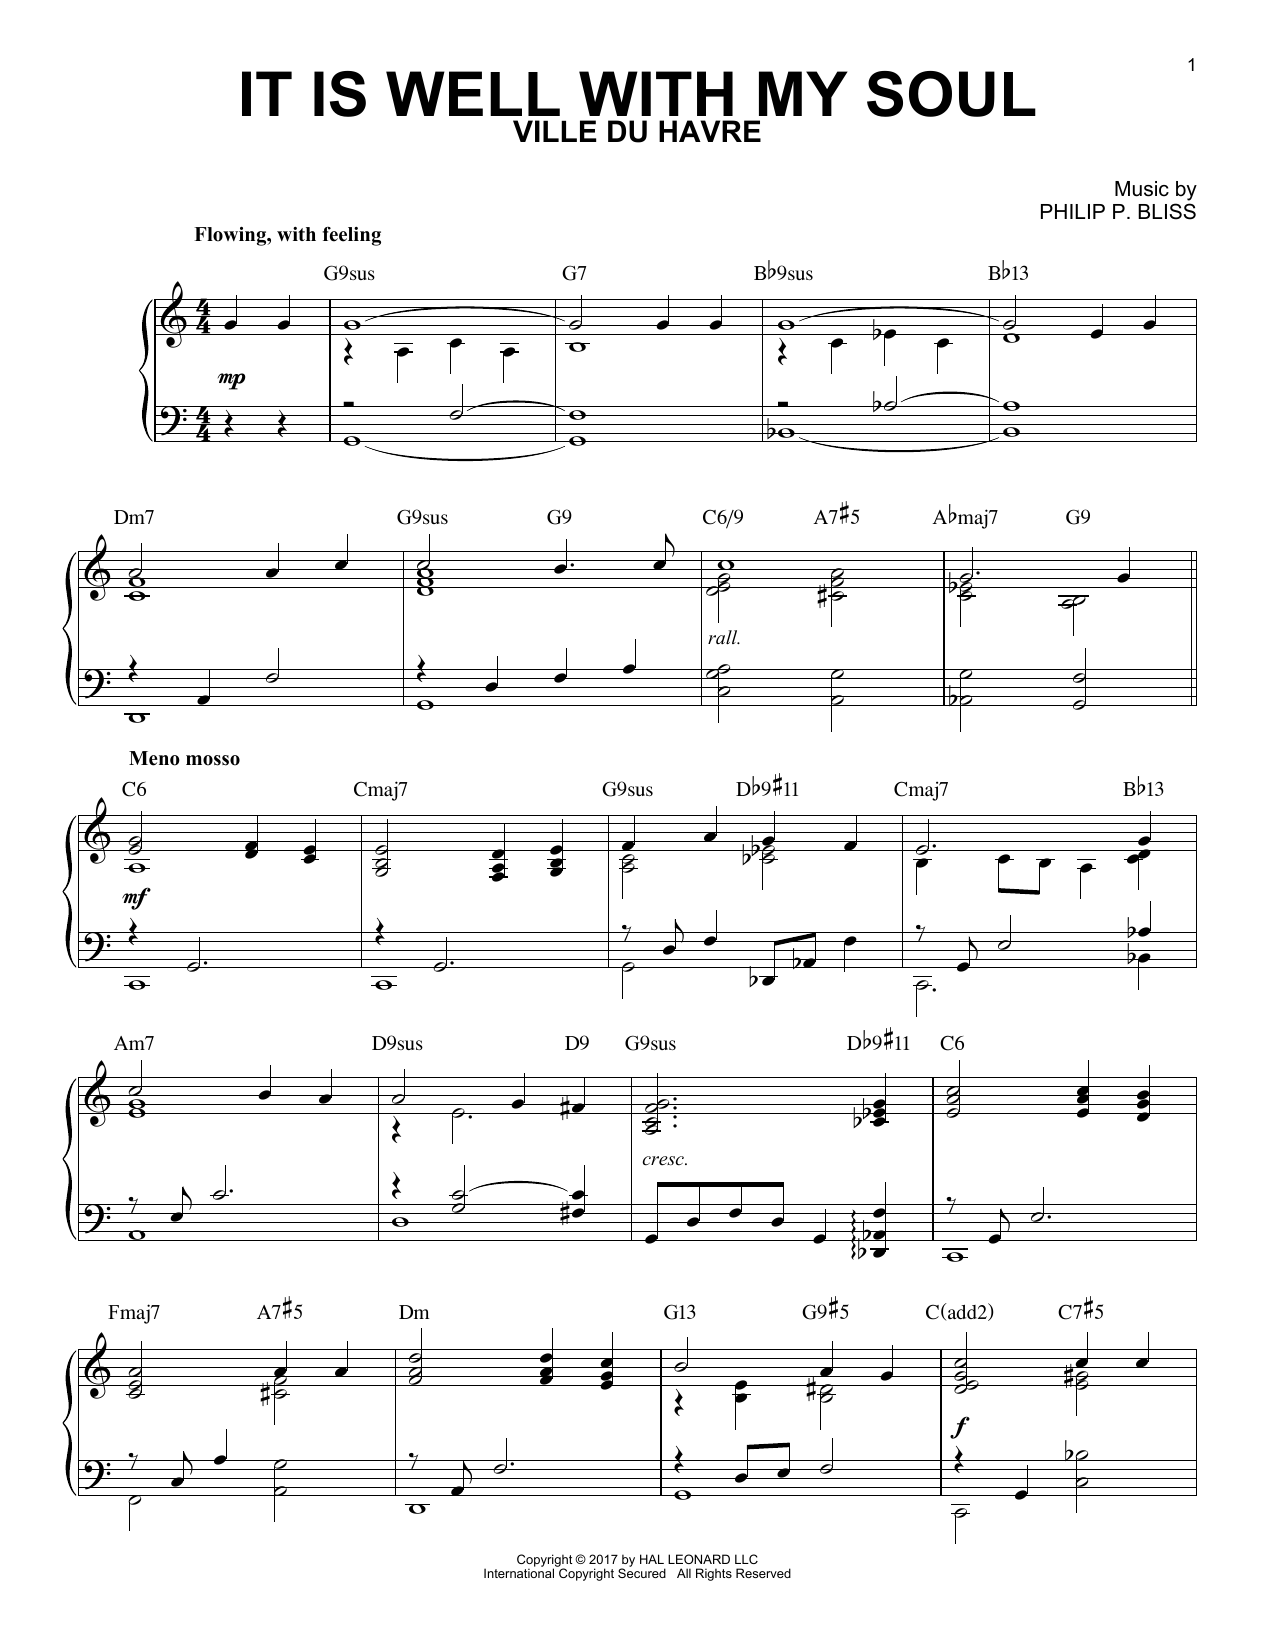 Horatio G. Spafford It Is Well With My Soul [Jazz version] Sheet Music  Notes, Chords   Download Printable Piano Solo PDF Score   SKU 15